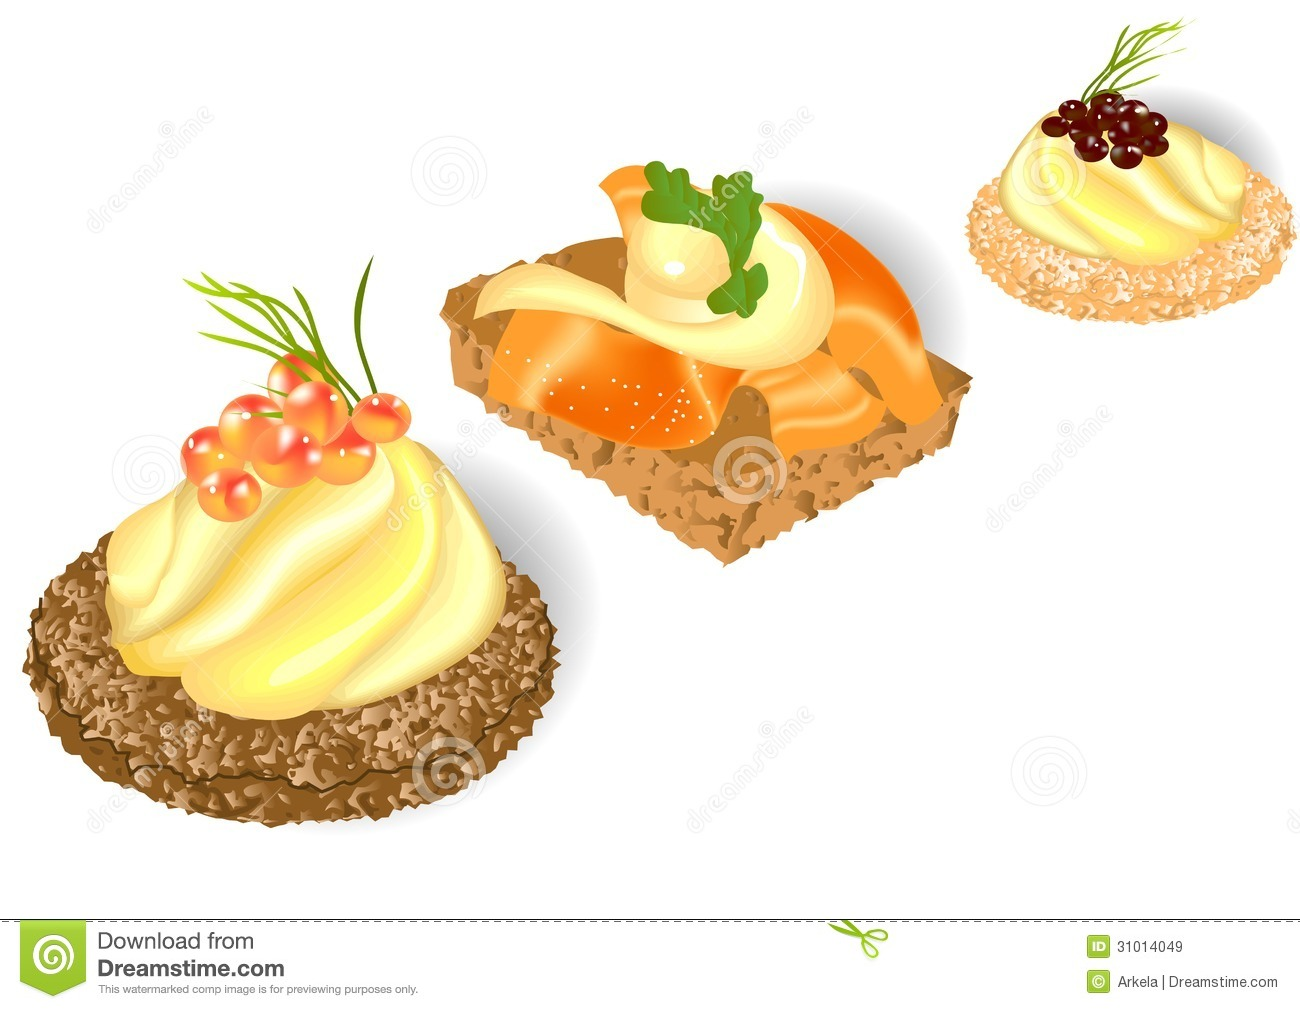 Canape royalty free stock images image 31014049 for Canape vector download